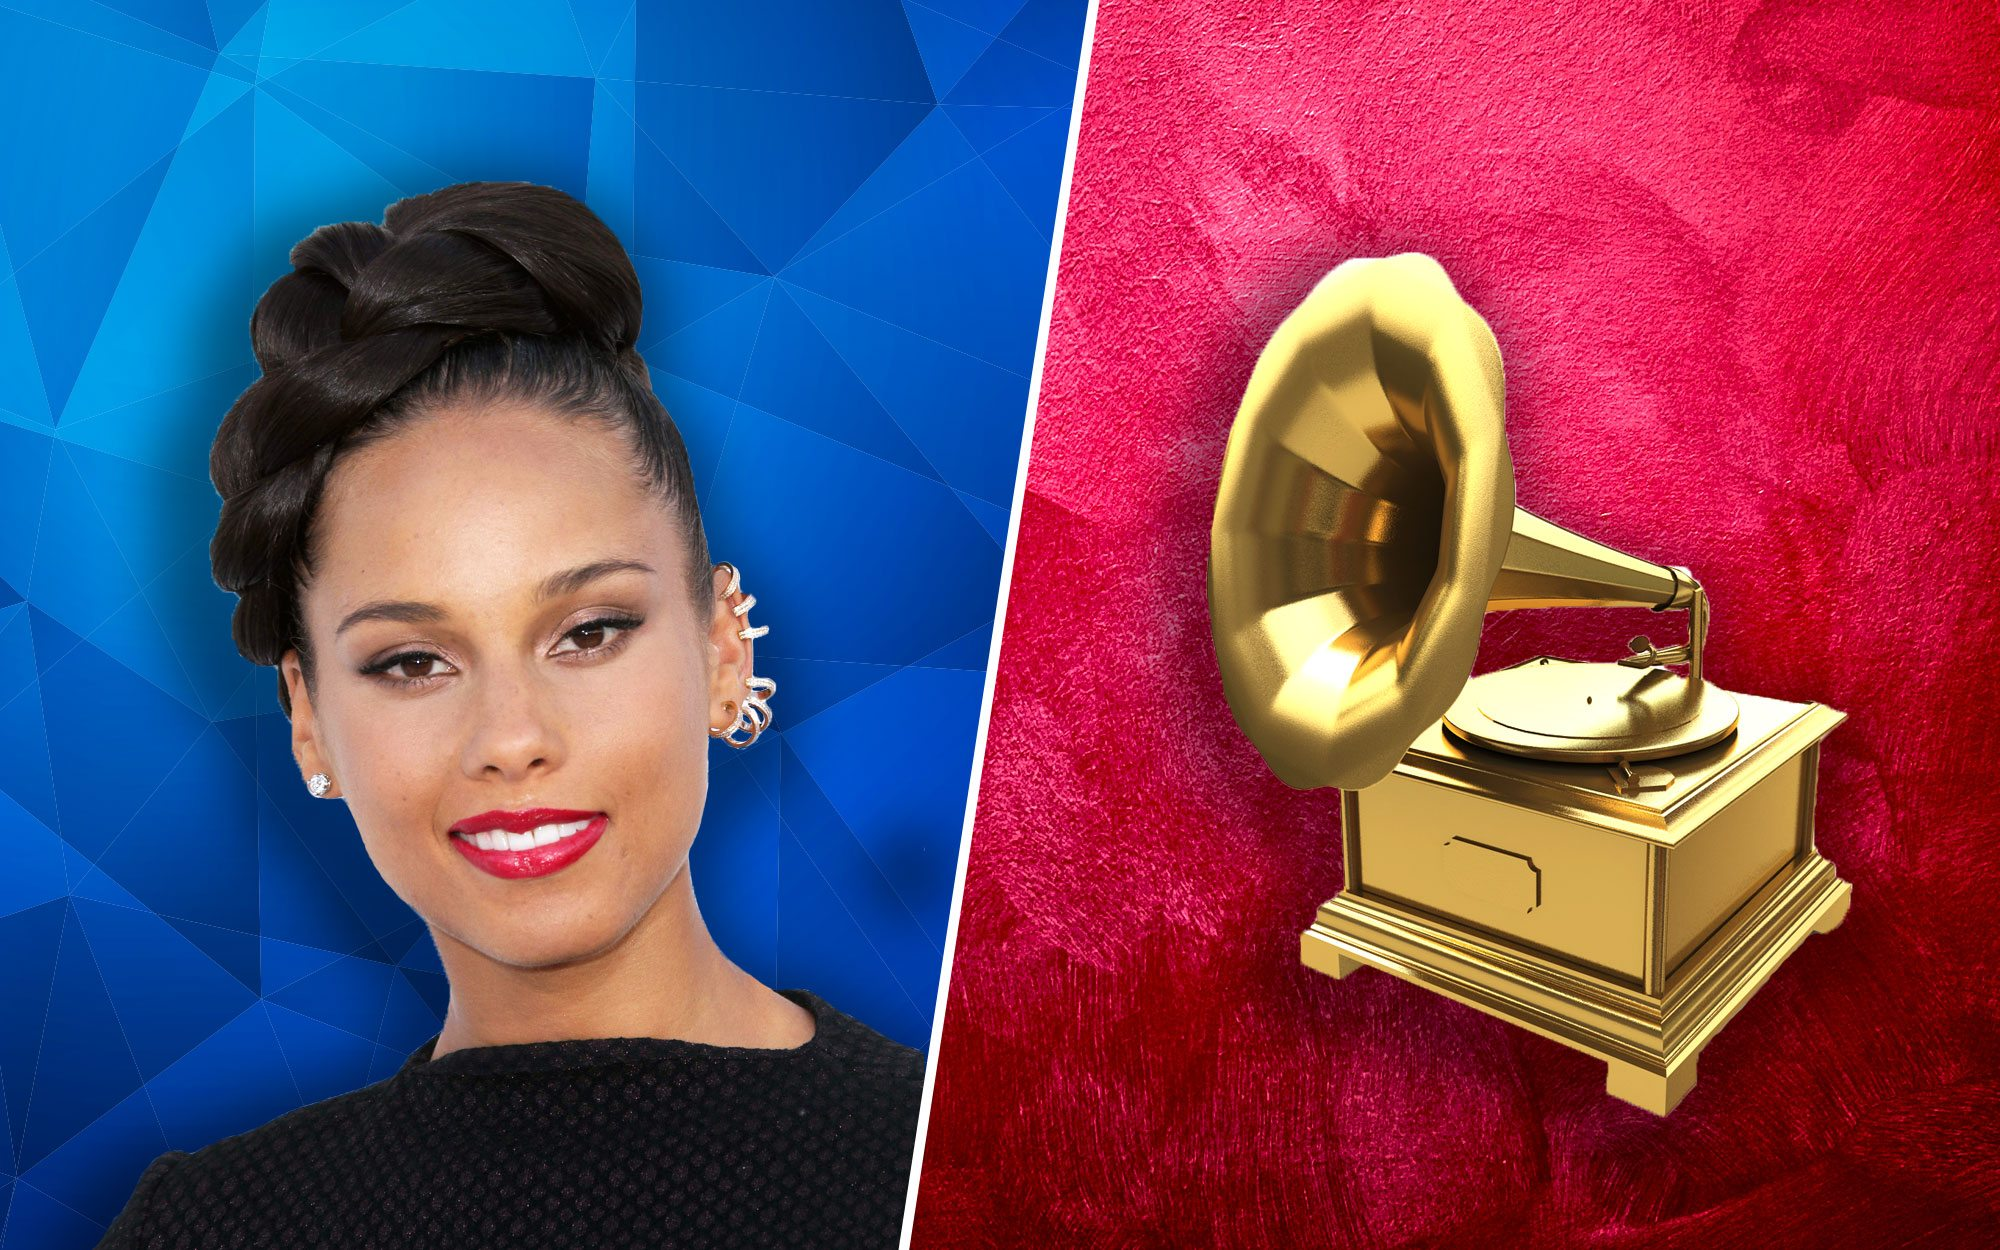 Alicia Keys at the Grammys: Brings Out Michelle Obama in Surprise Appearance